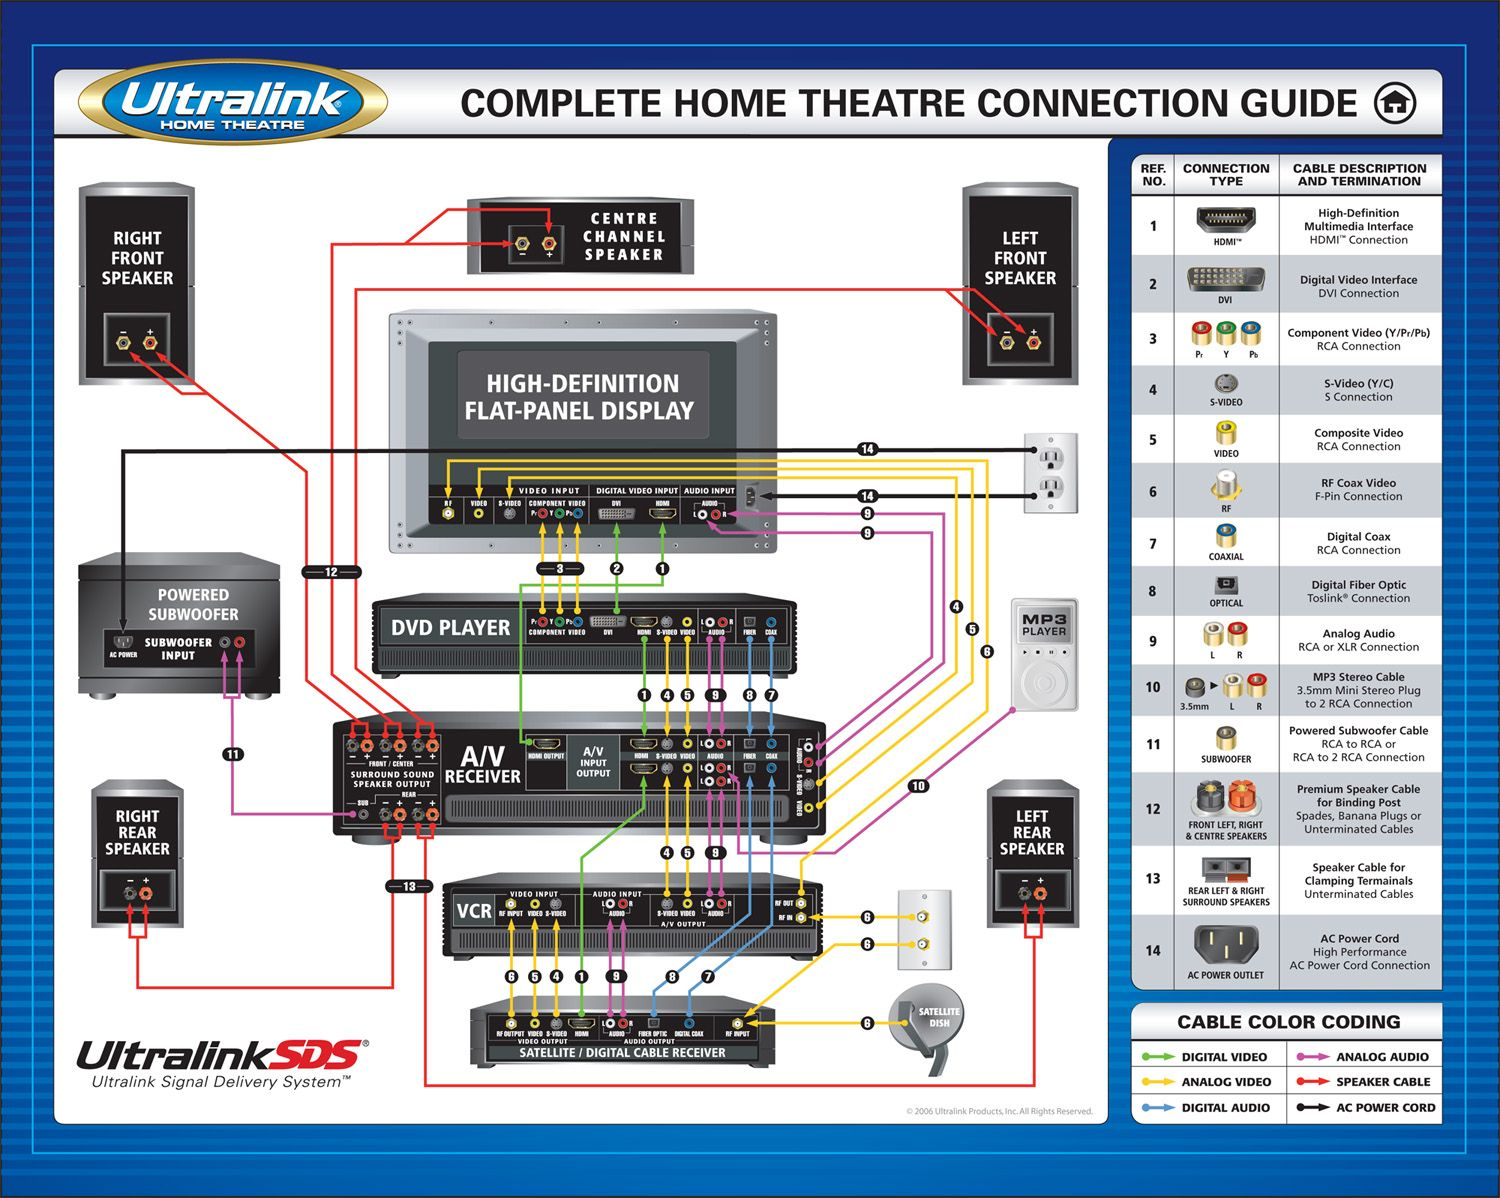 Home theatre connection guide, audio connections, video